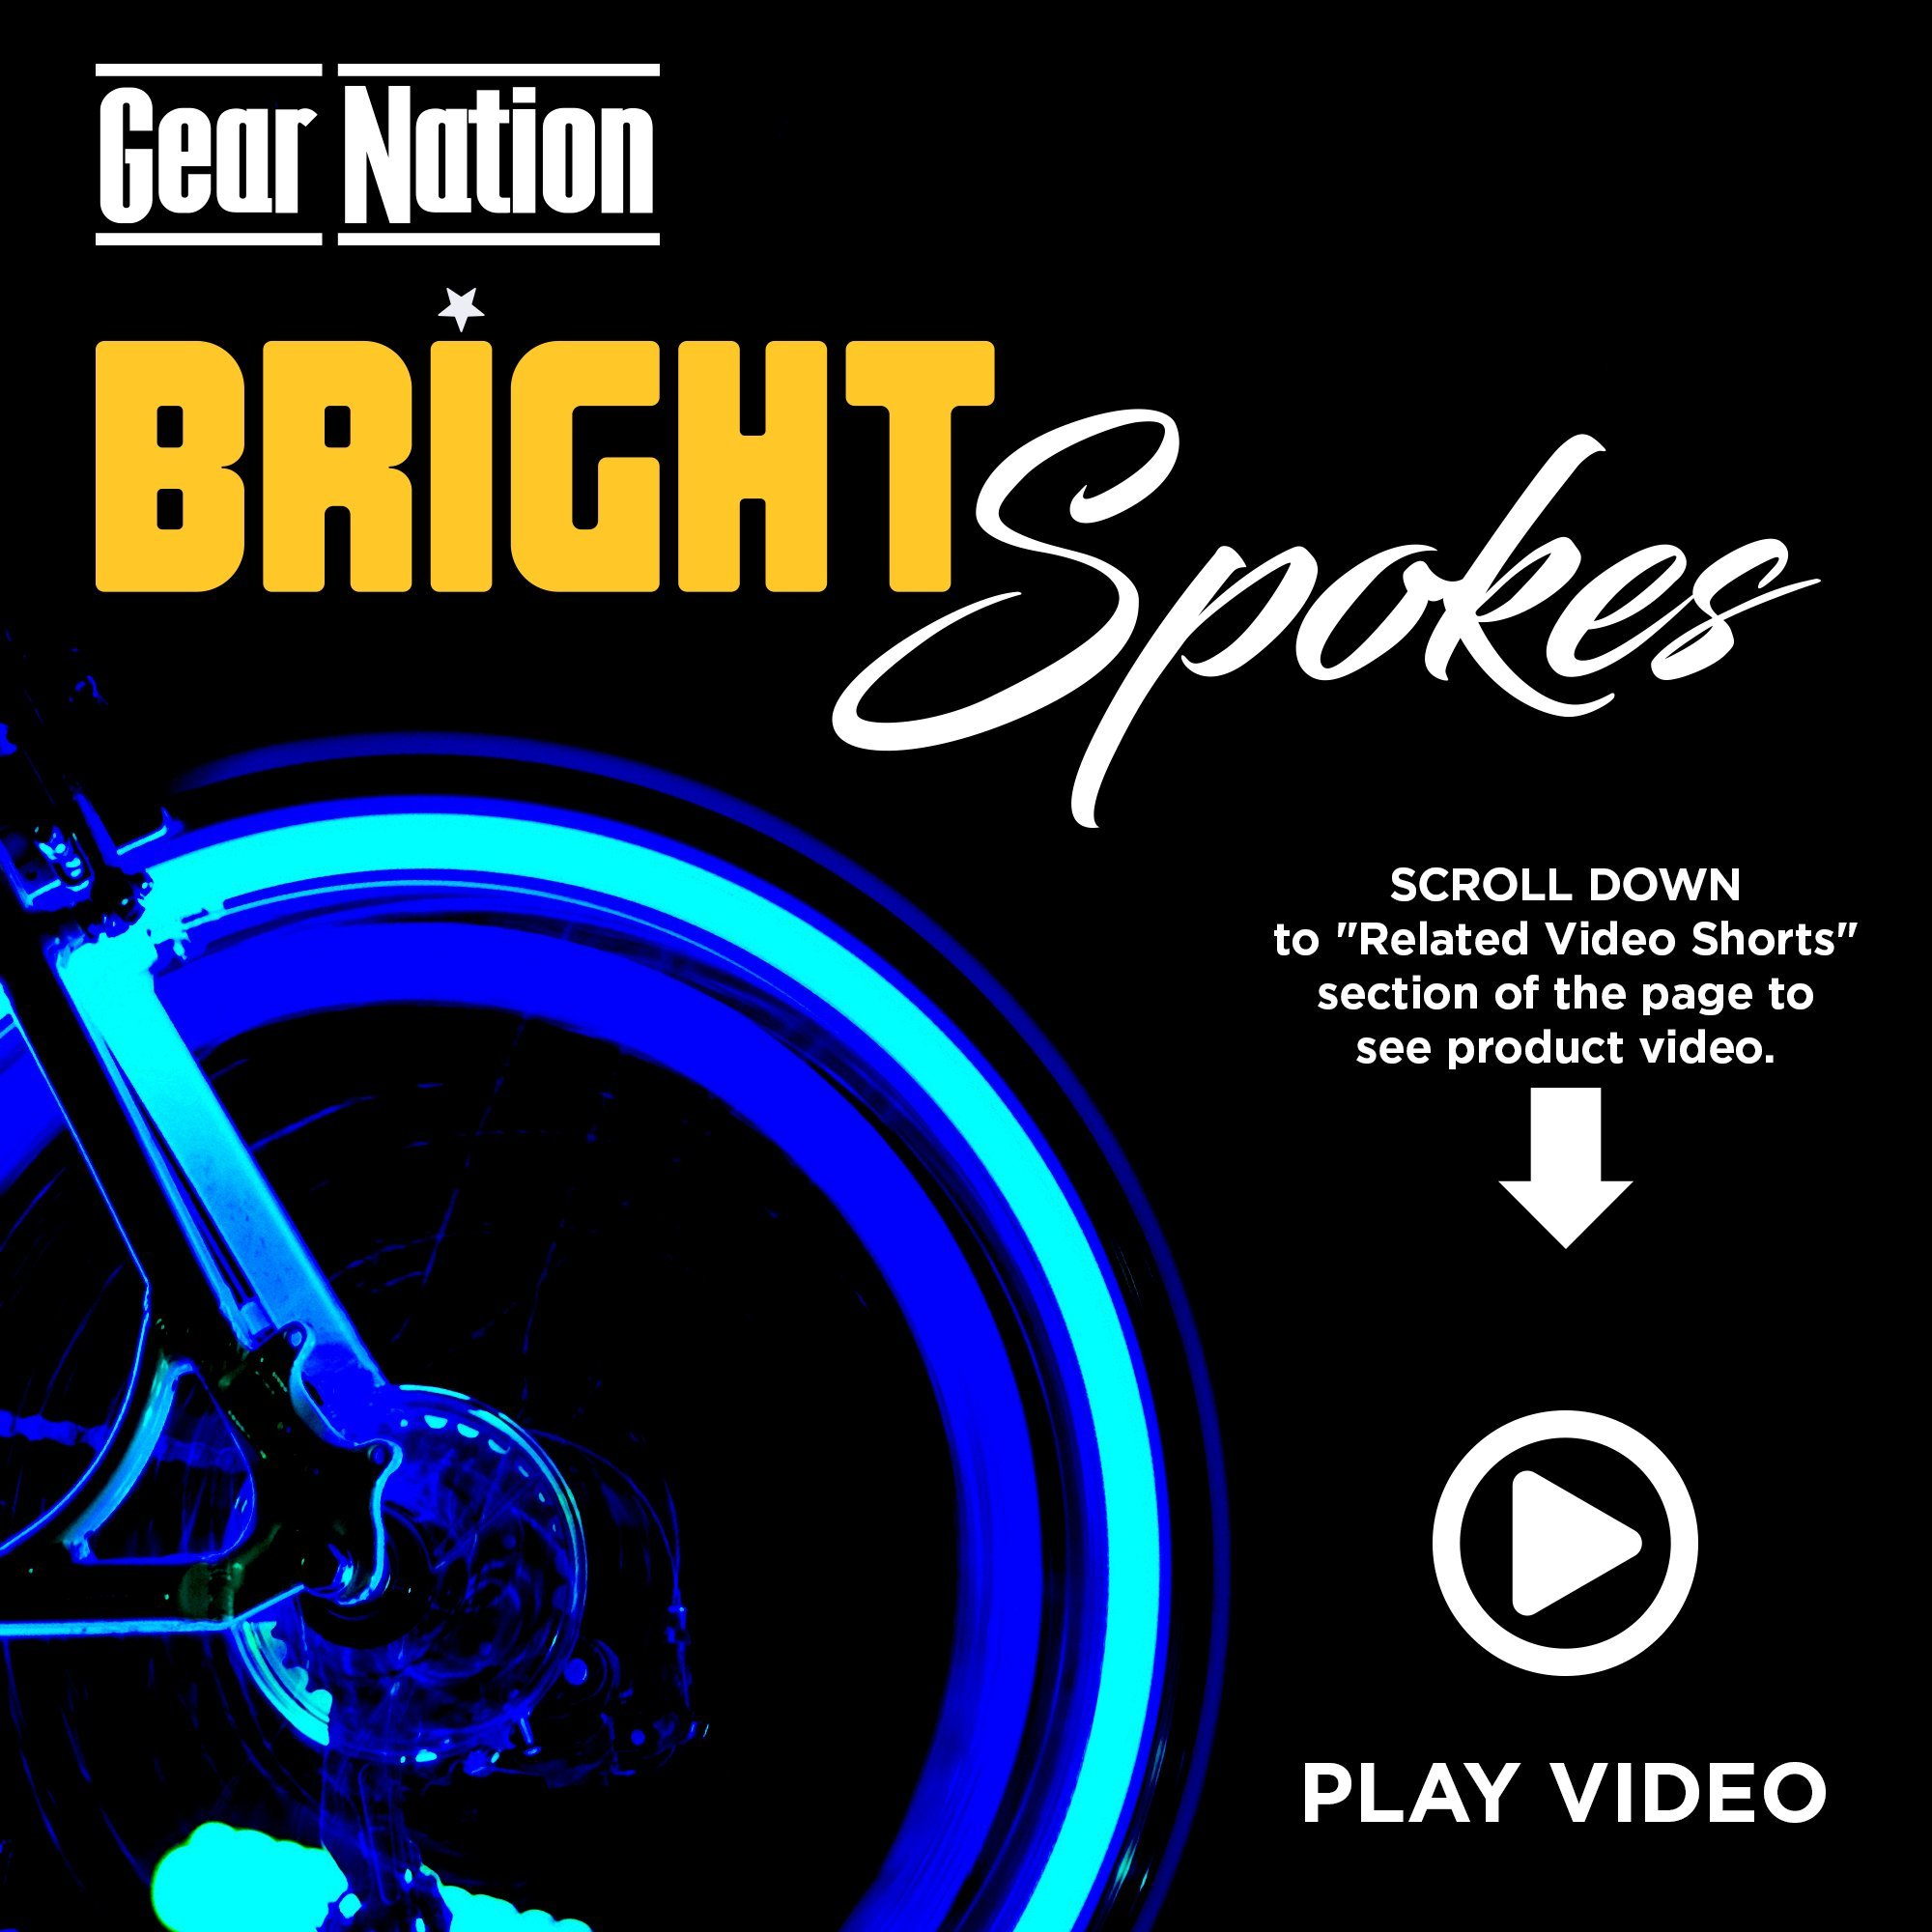 Bright Spokes Premium LED Bike Wheel Lights | 7 Colors in 1 | USB Rechargeable Battery | Strong Silicone Tube Cover | 18 Modes | Best Gift for all ages | 5, 6, 7, 8, 9 + year old boy gifts (1 Tire) by Gear Nation (Image #2)